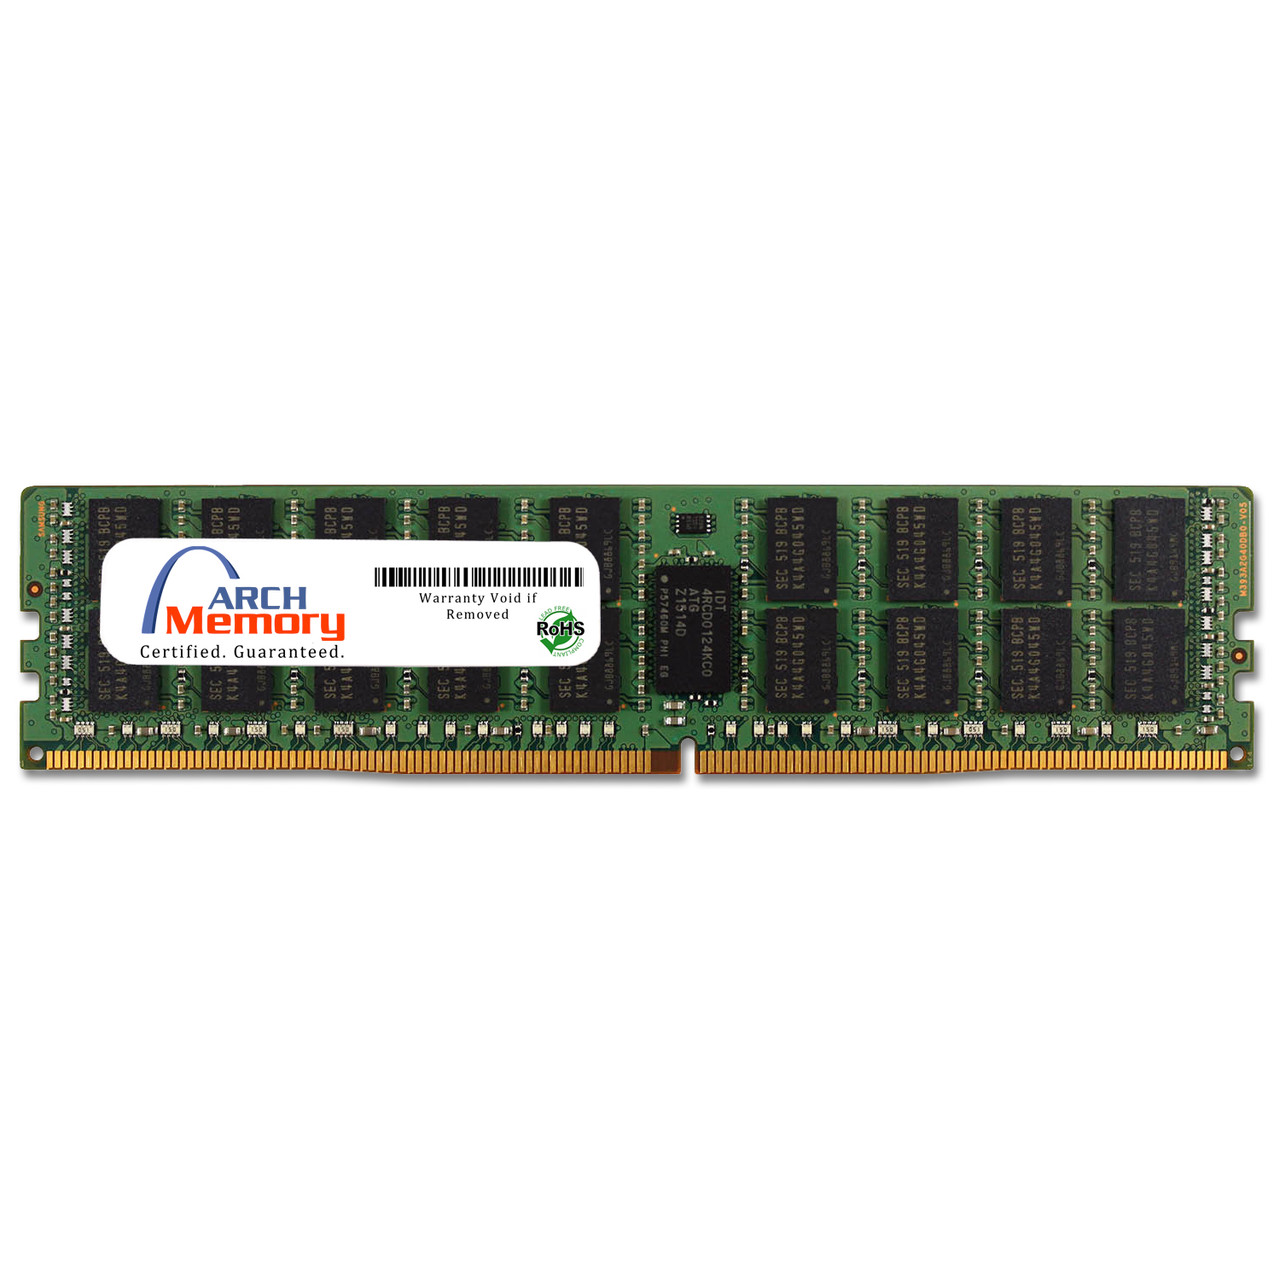 Cisco UCS-MR-X64G4RS-H 64 GB 288-Pin DDR4 2666 MHz RDIMM RAM